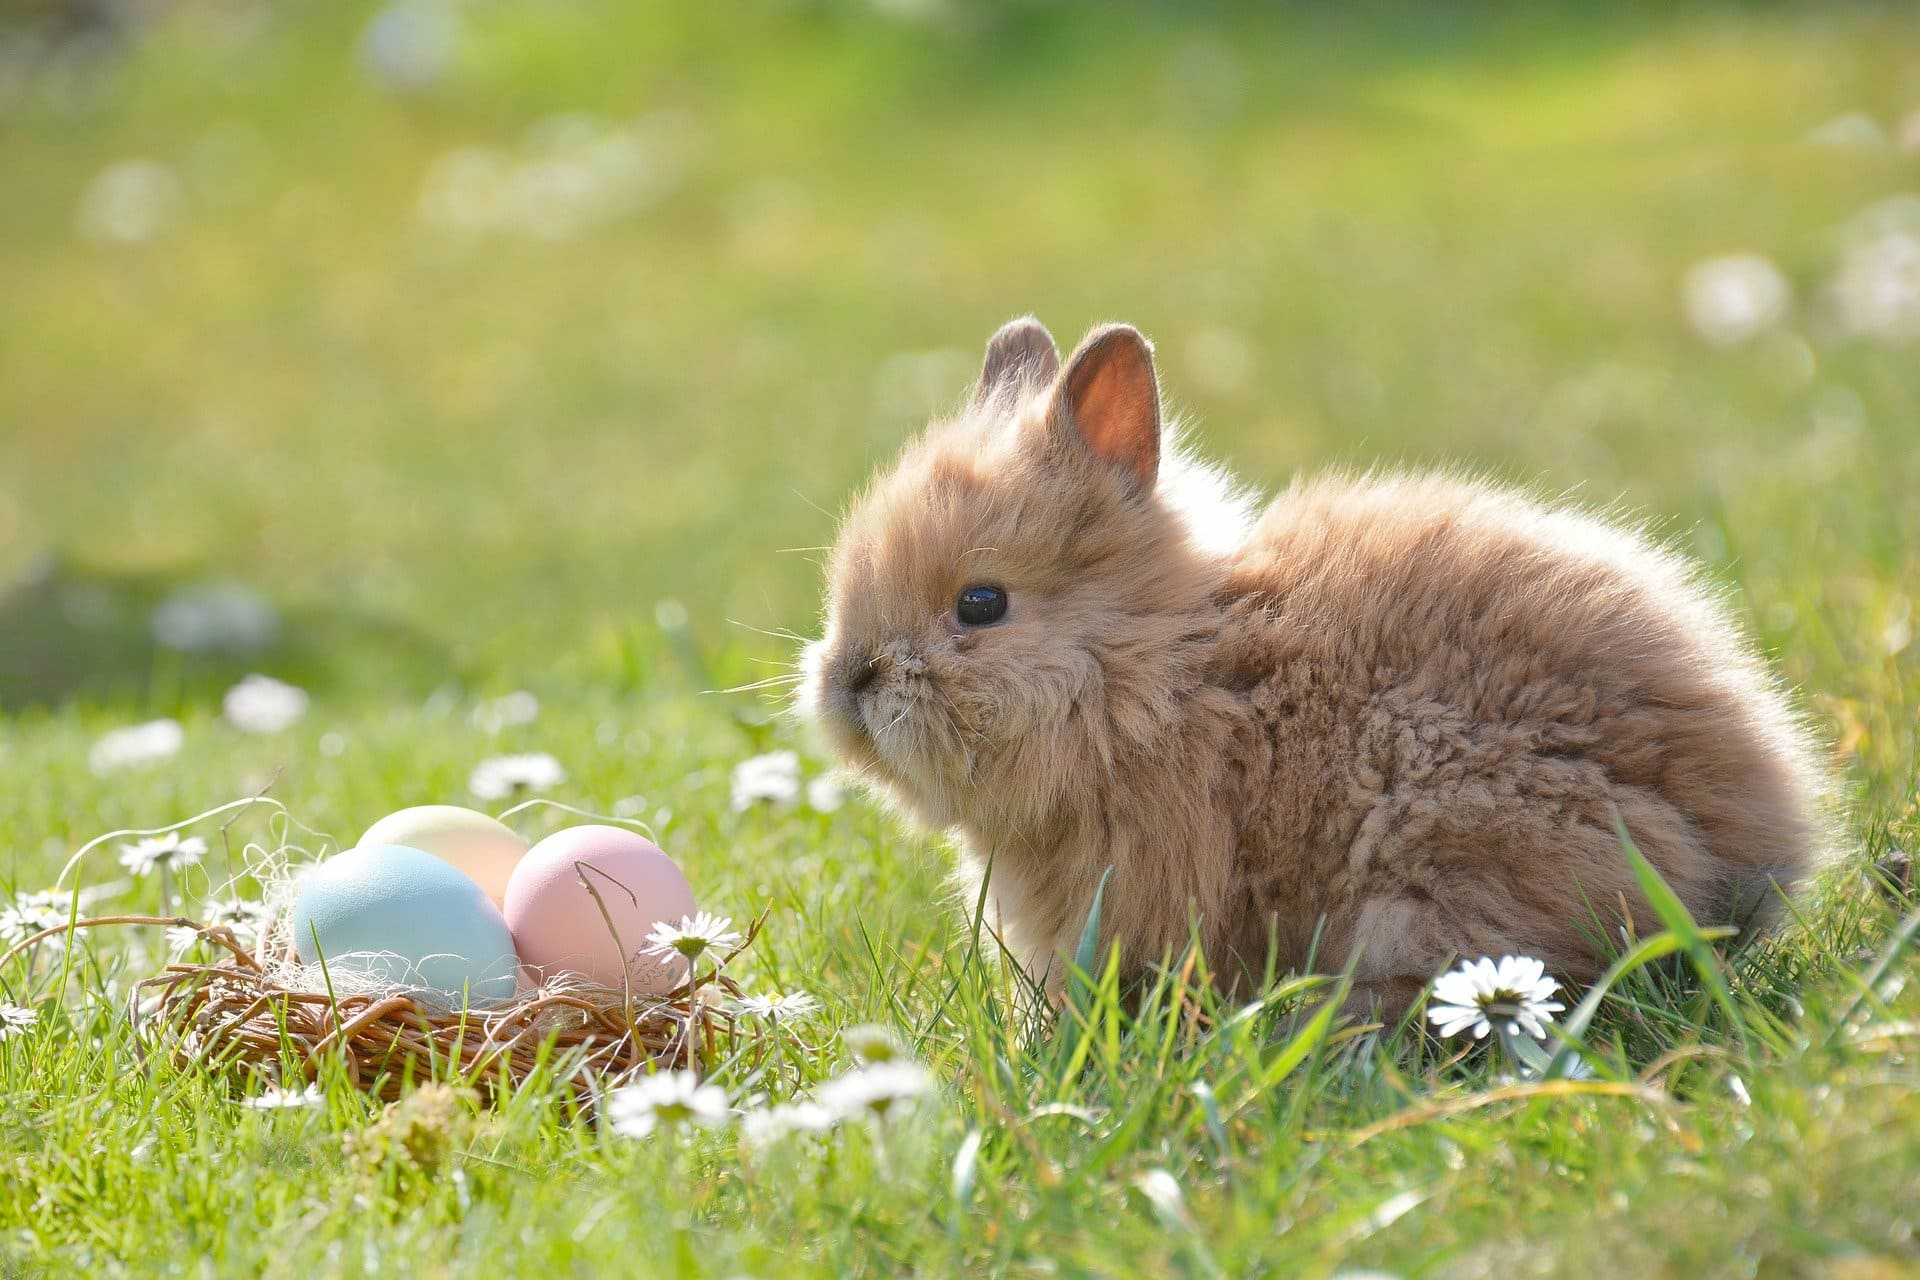 A small bunny and some easter eggs | Source: Pixabay